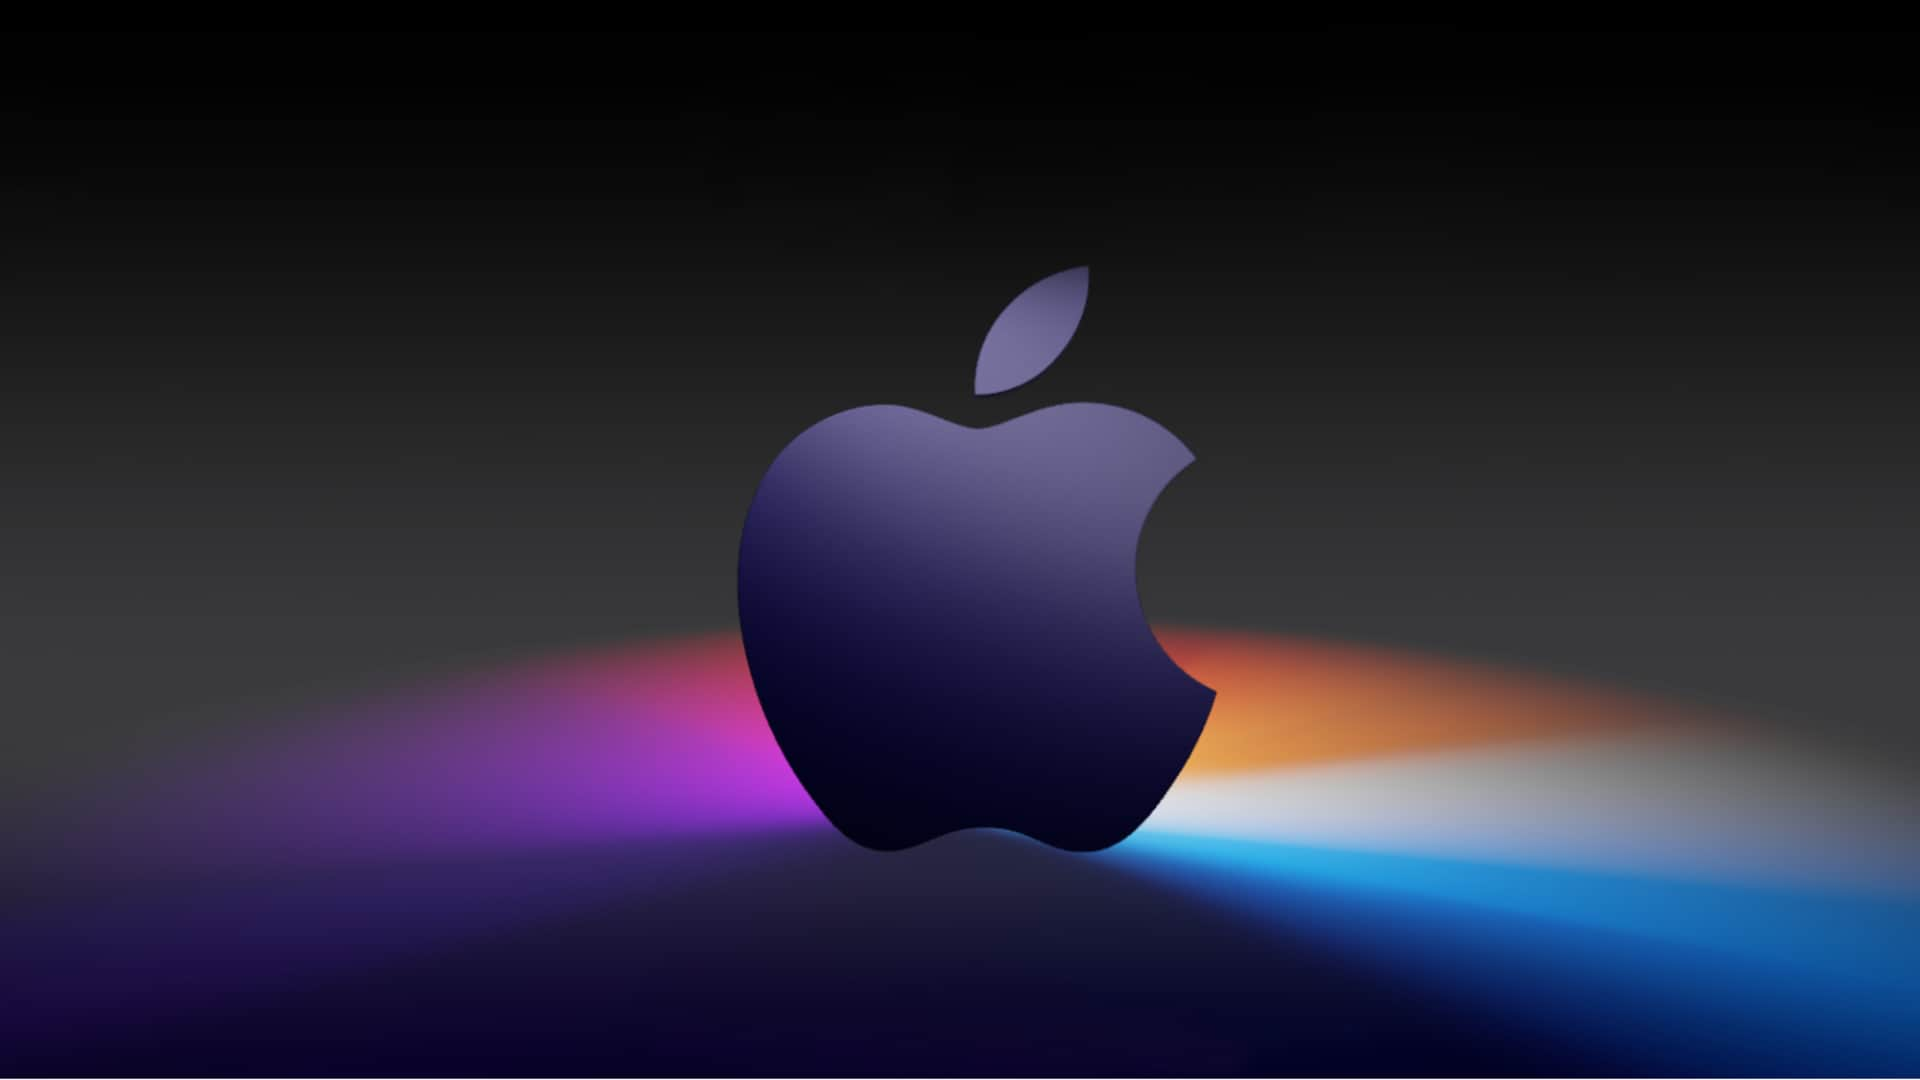 Apples One More Thing keynote 2020